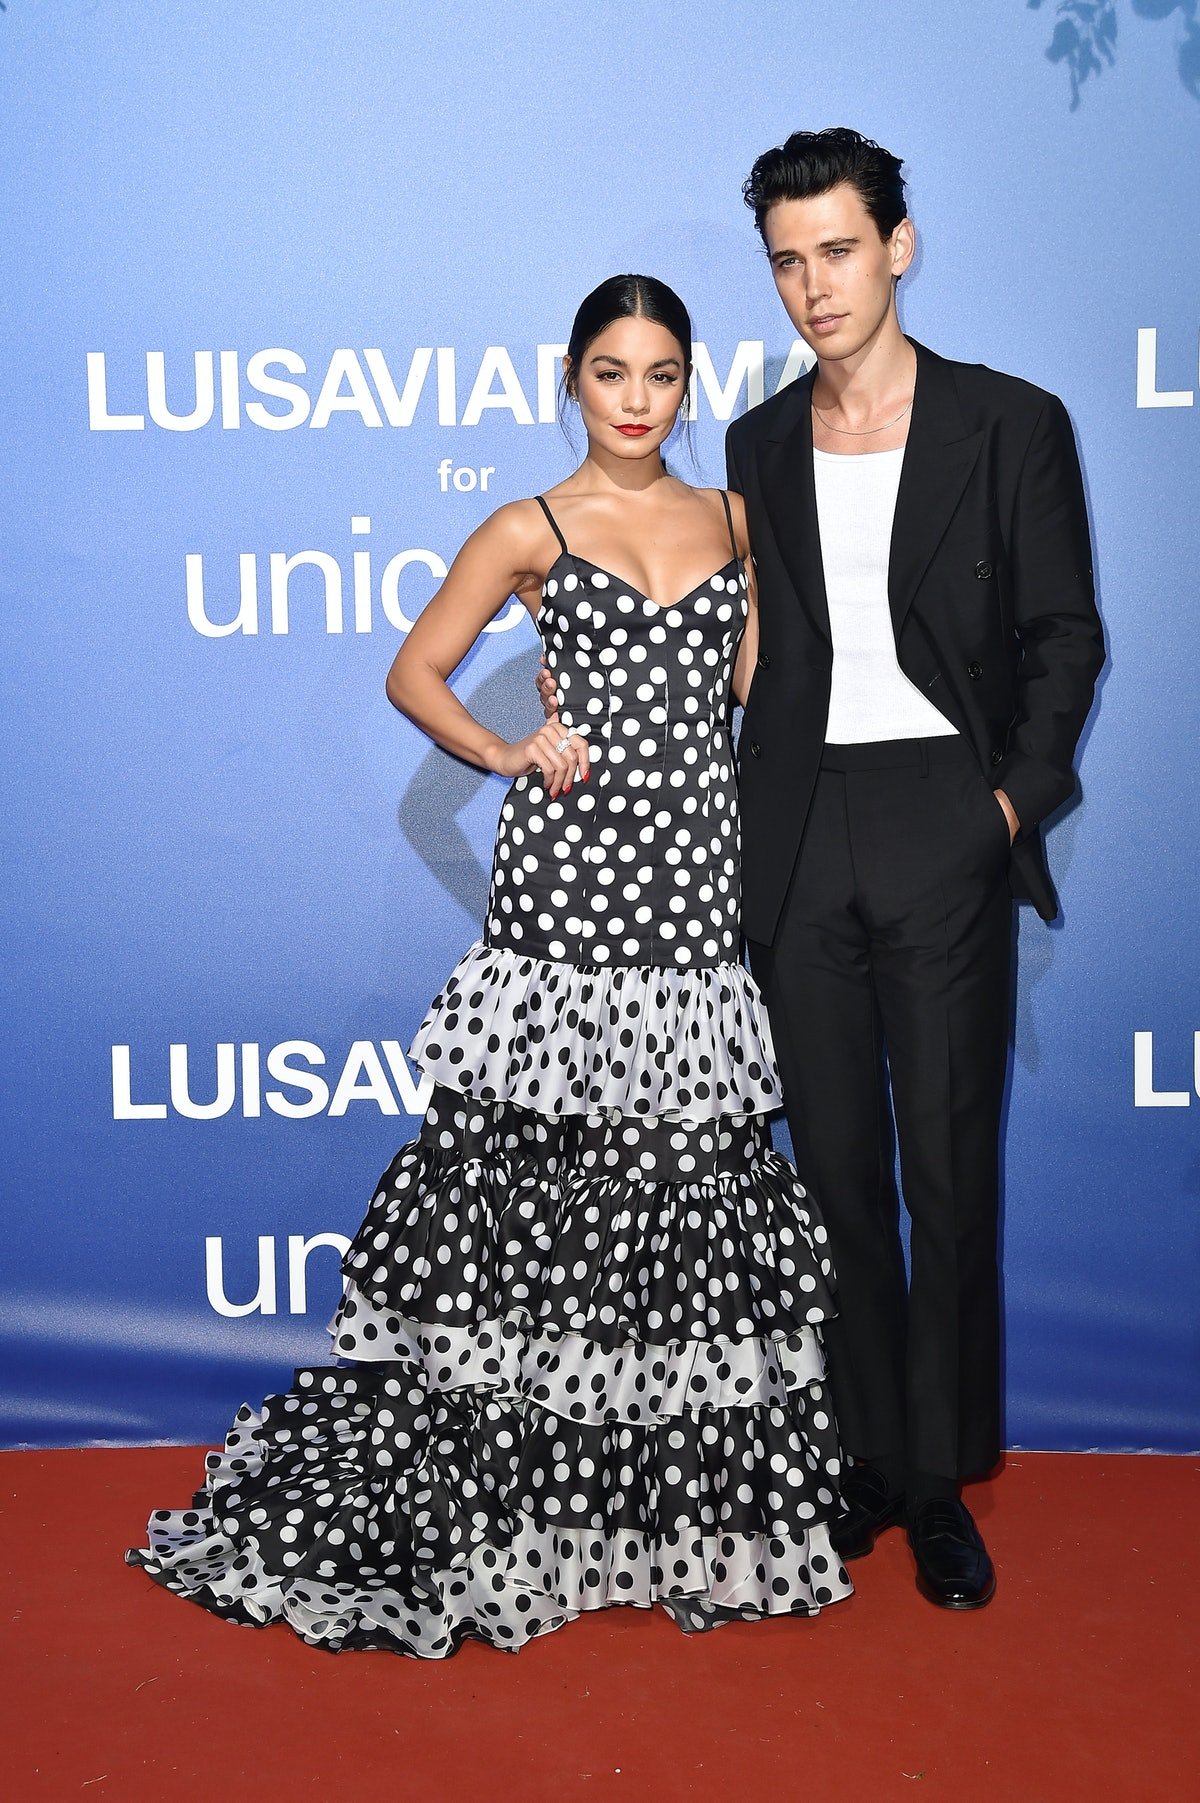 PORTO CERVO, ITALY - AUGUST 09: Vanessa Hudgens and Austin Butler attend the photocall at the Unicef...